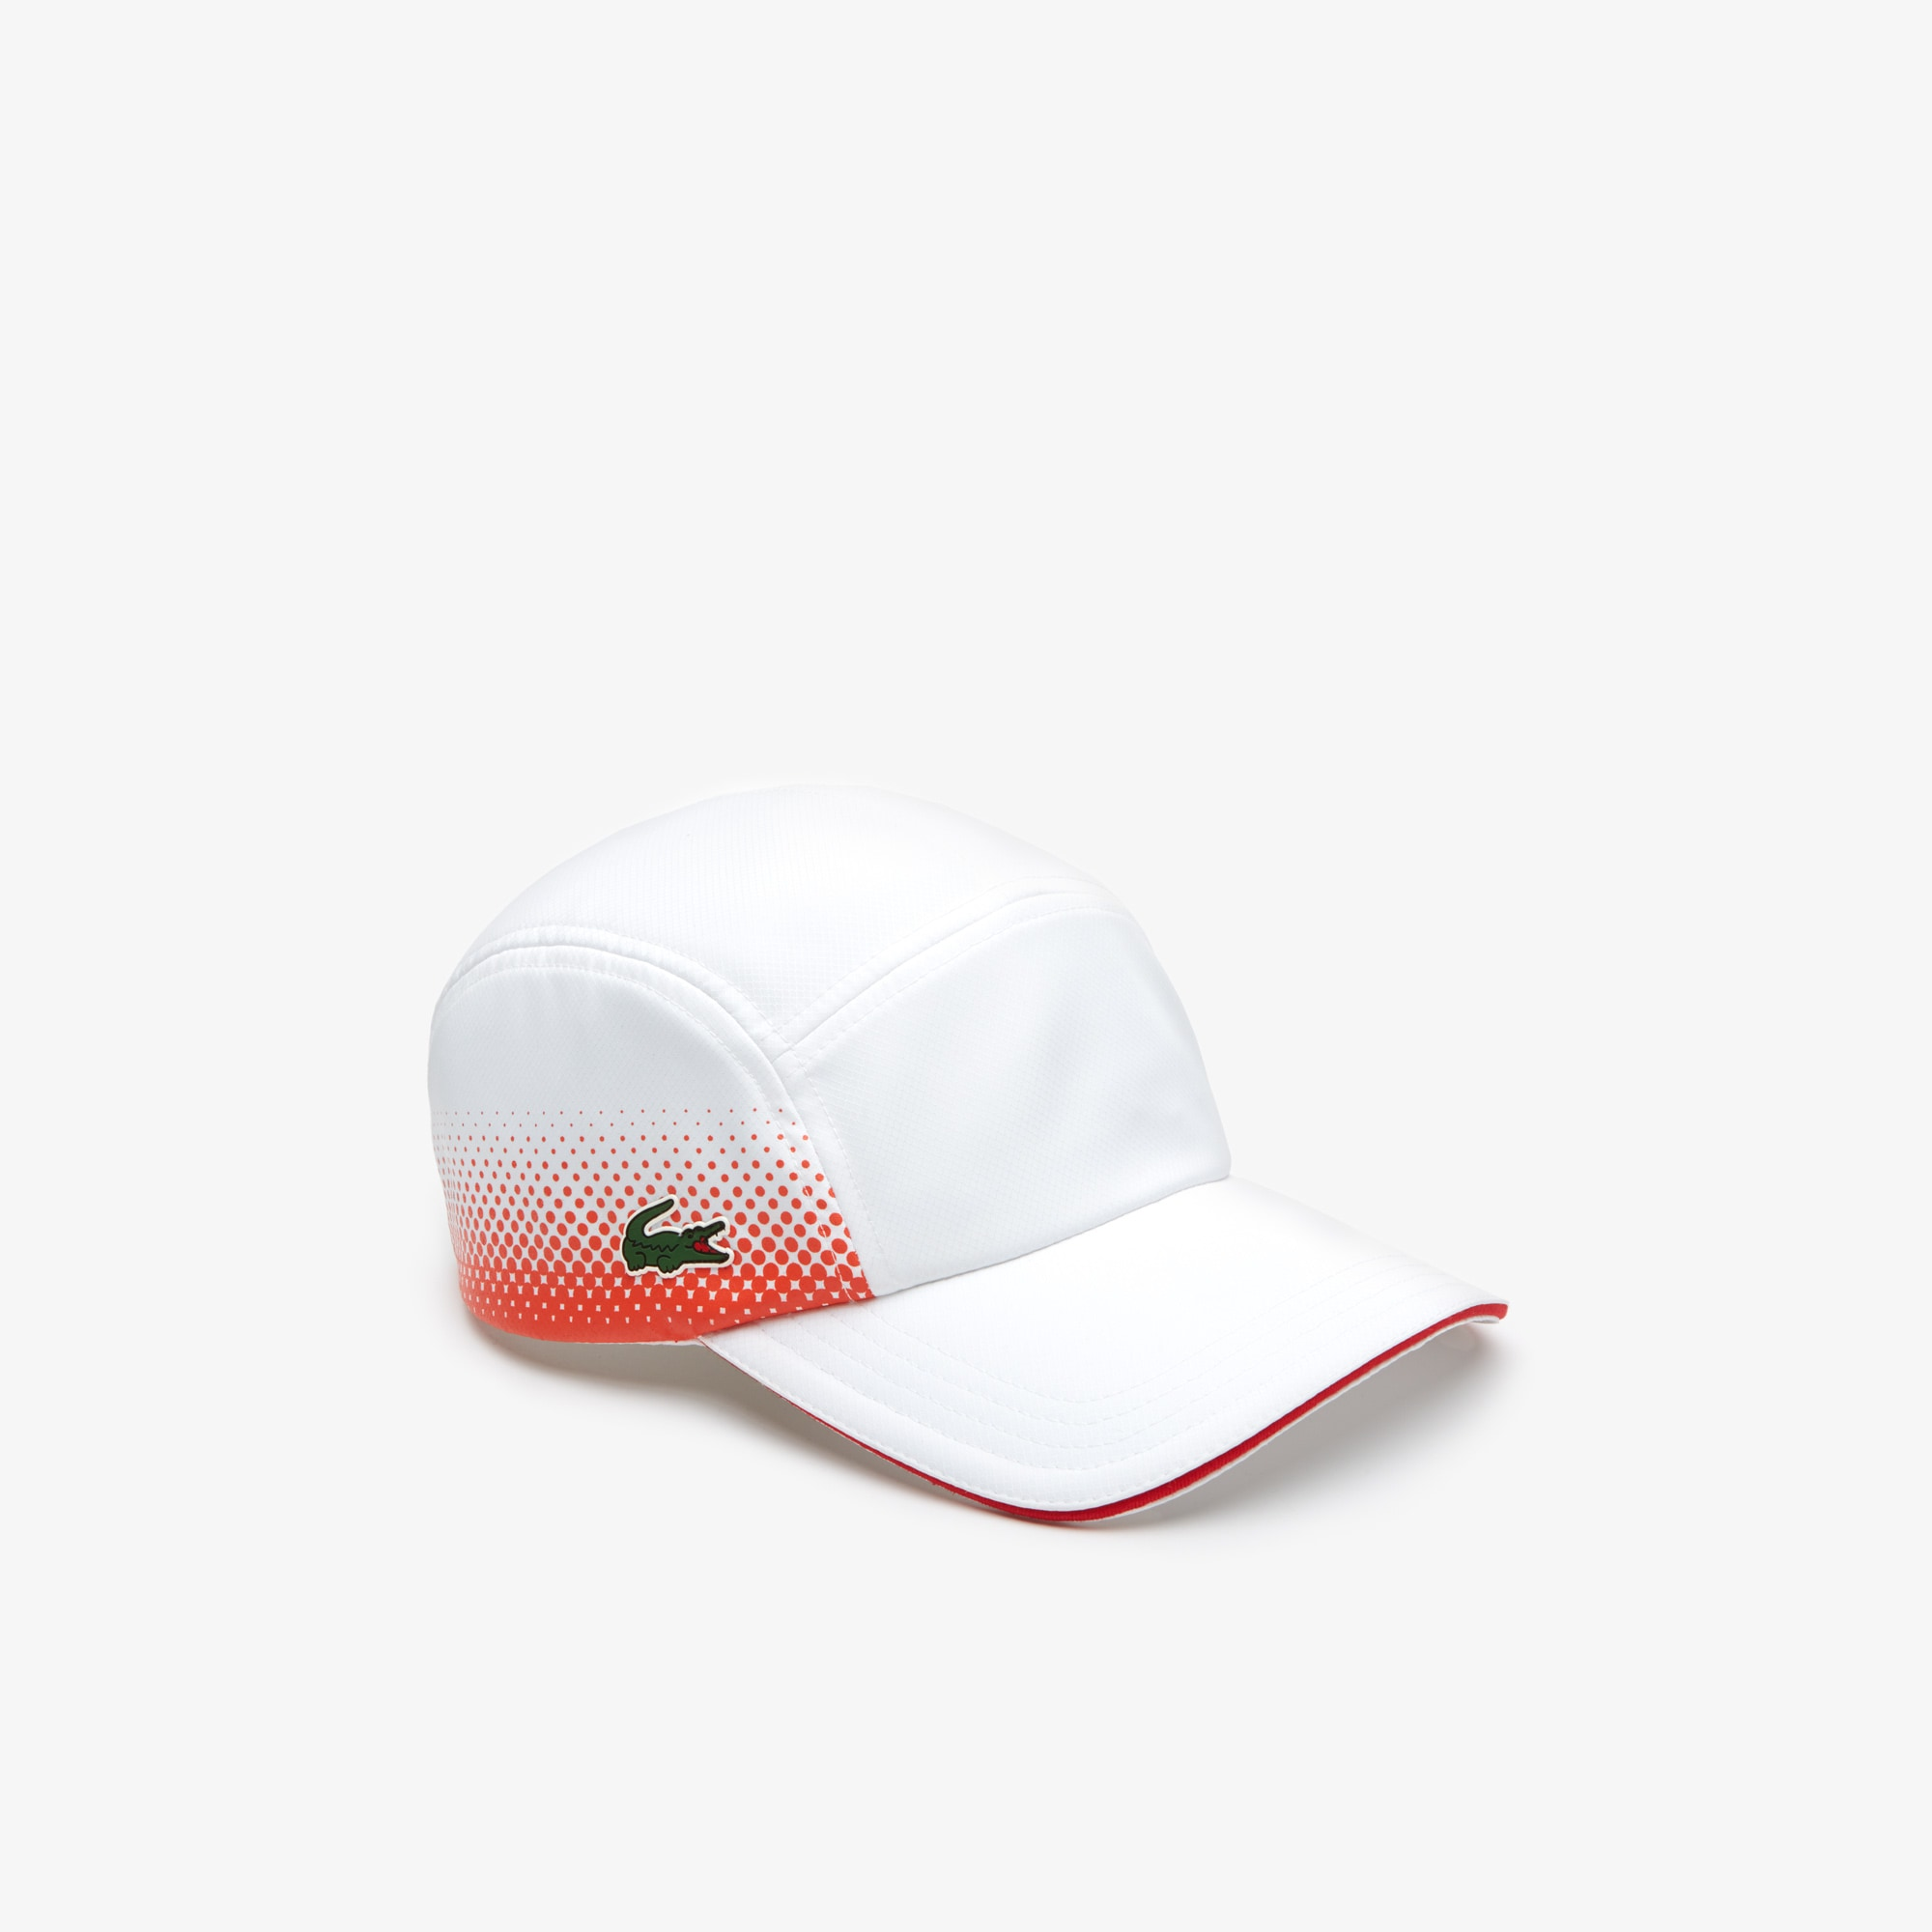 Men's Lacoste SPORT Shaded Print And Contrast Piping Tennis Cap